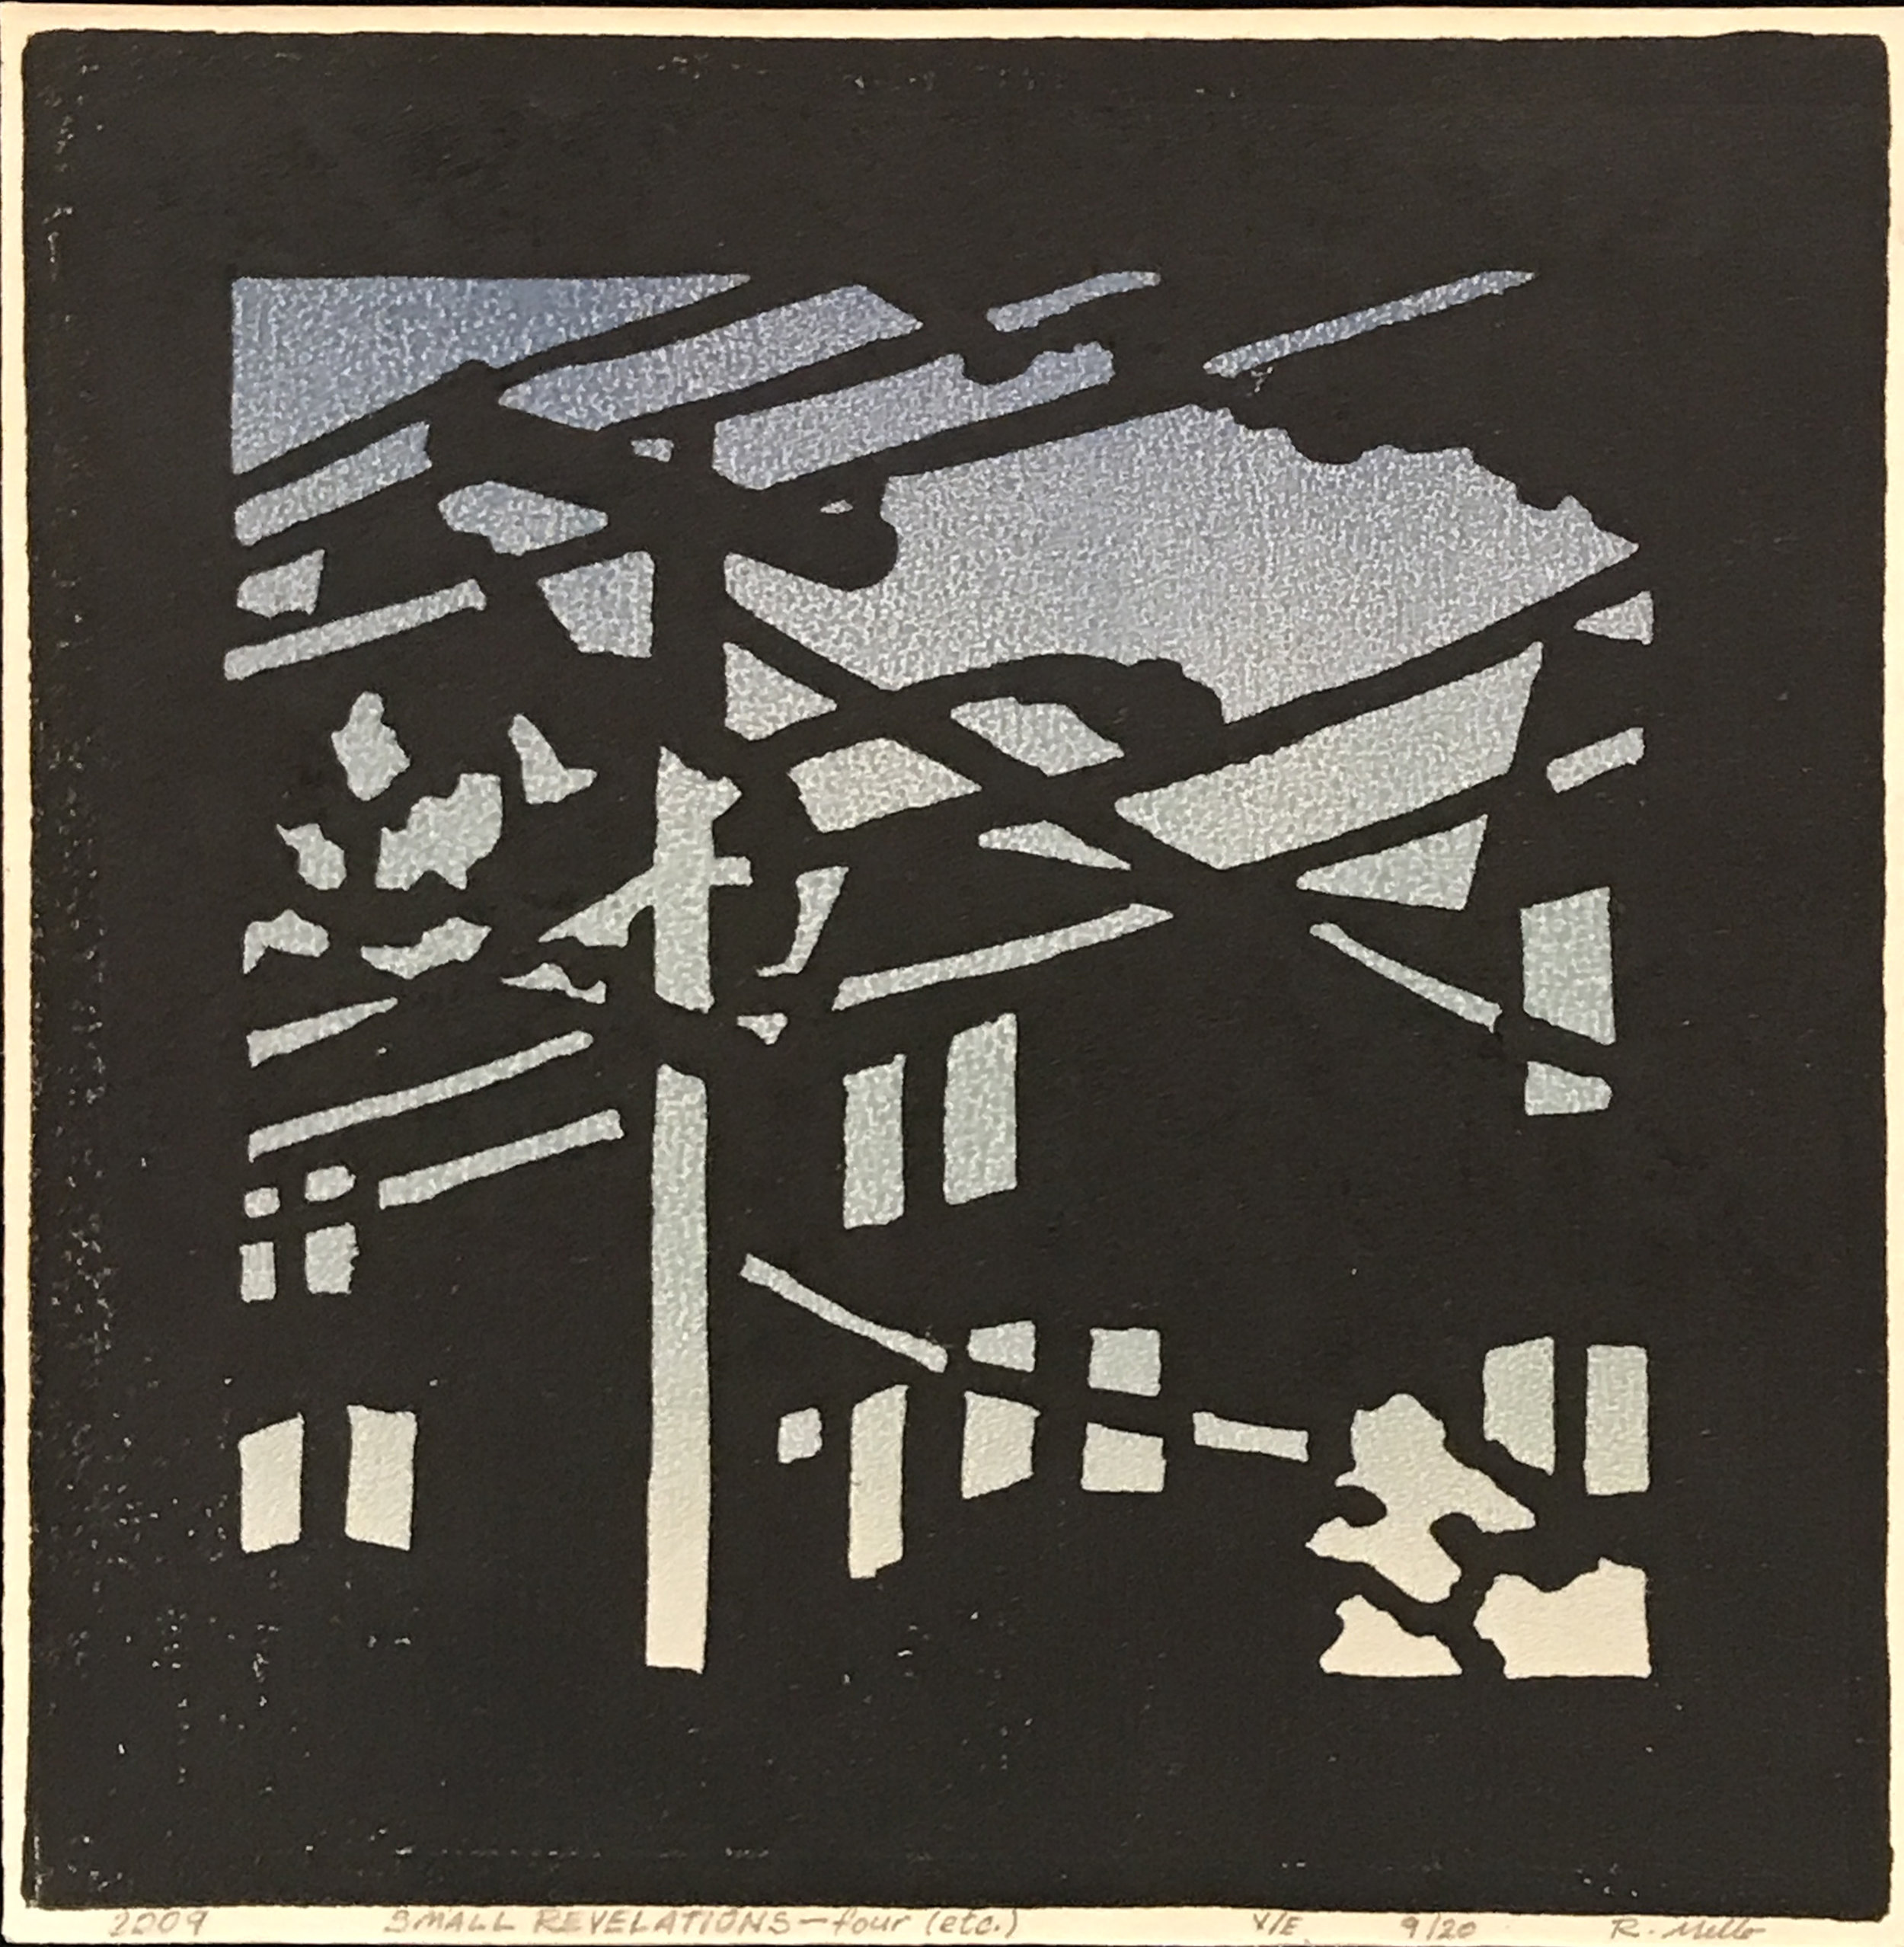 "Small Revelations - four (etc.) (V/E 9/20) , relief print on rice paper, 7 1/2"" x 7 1/2"" x 2"" framed, $125"